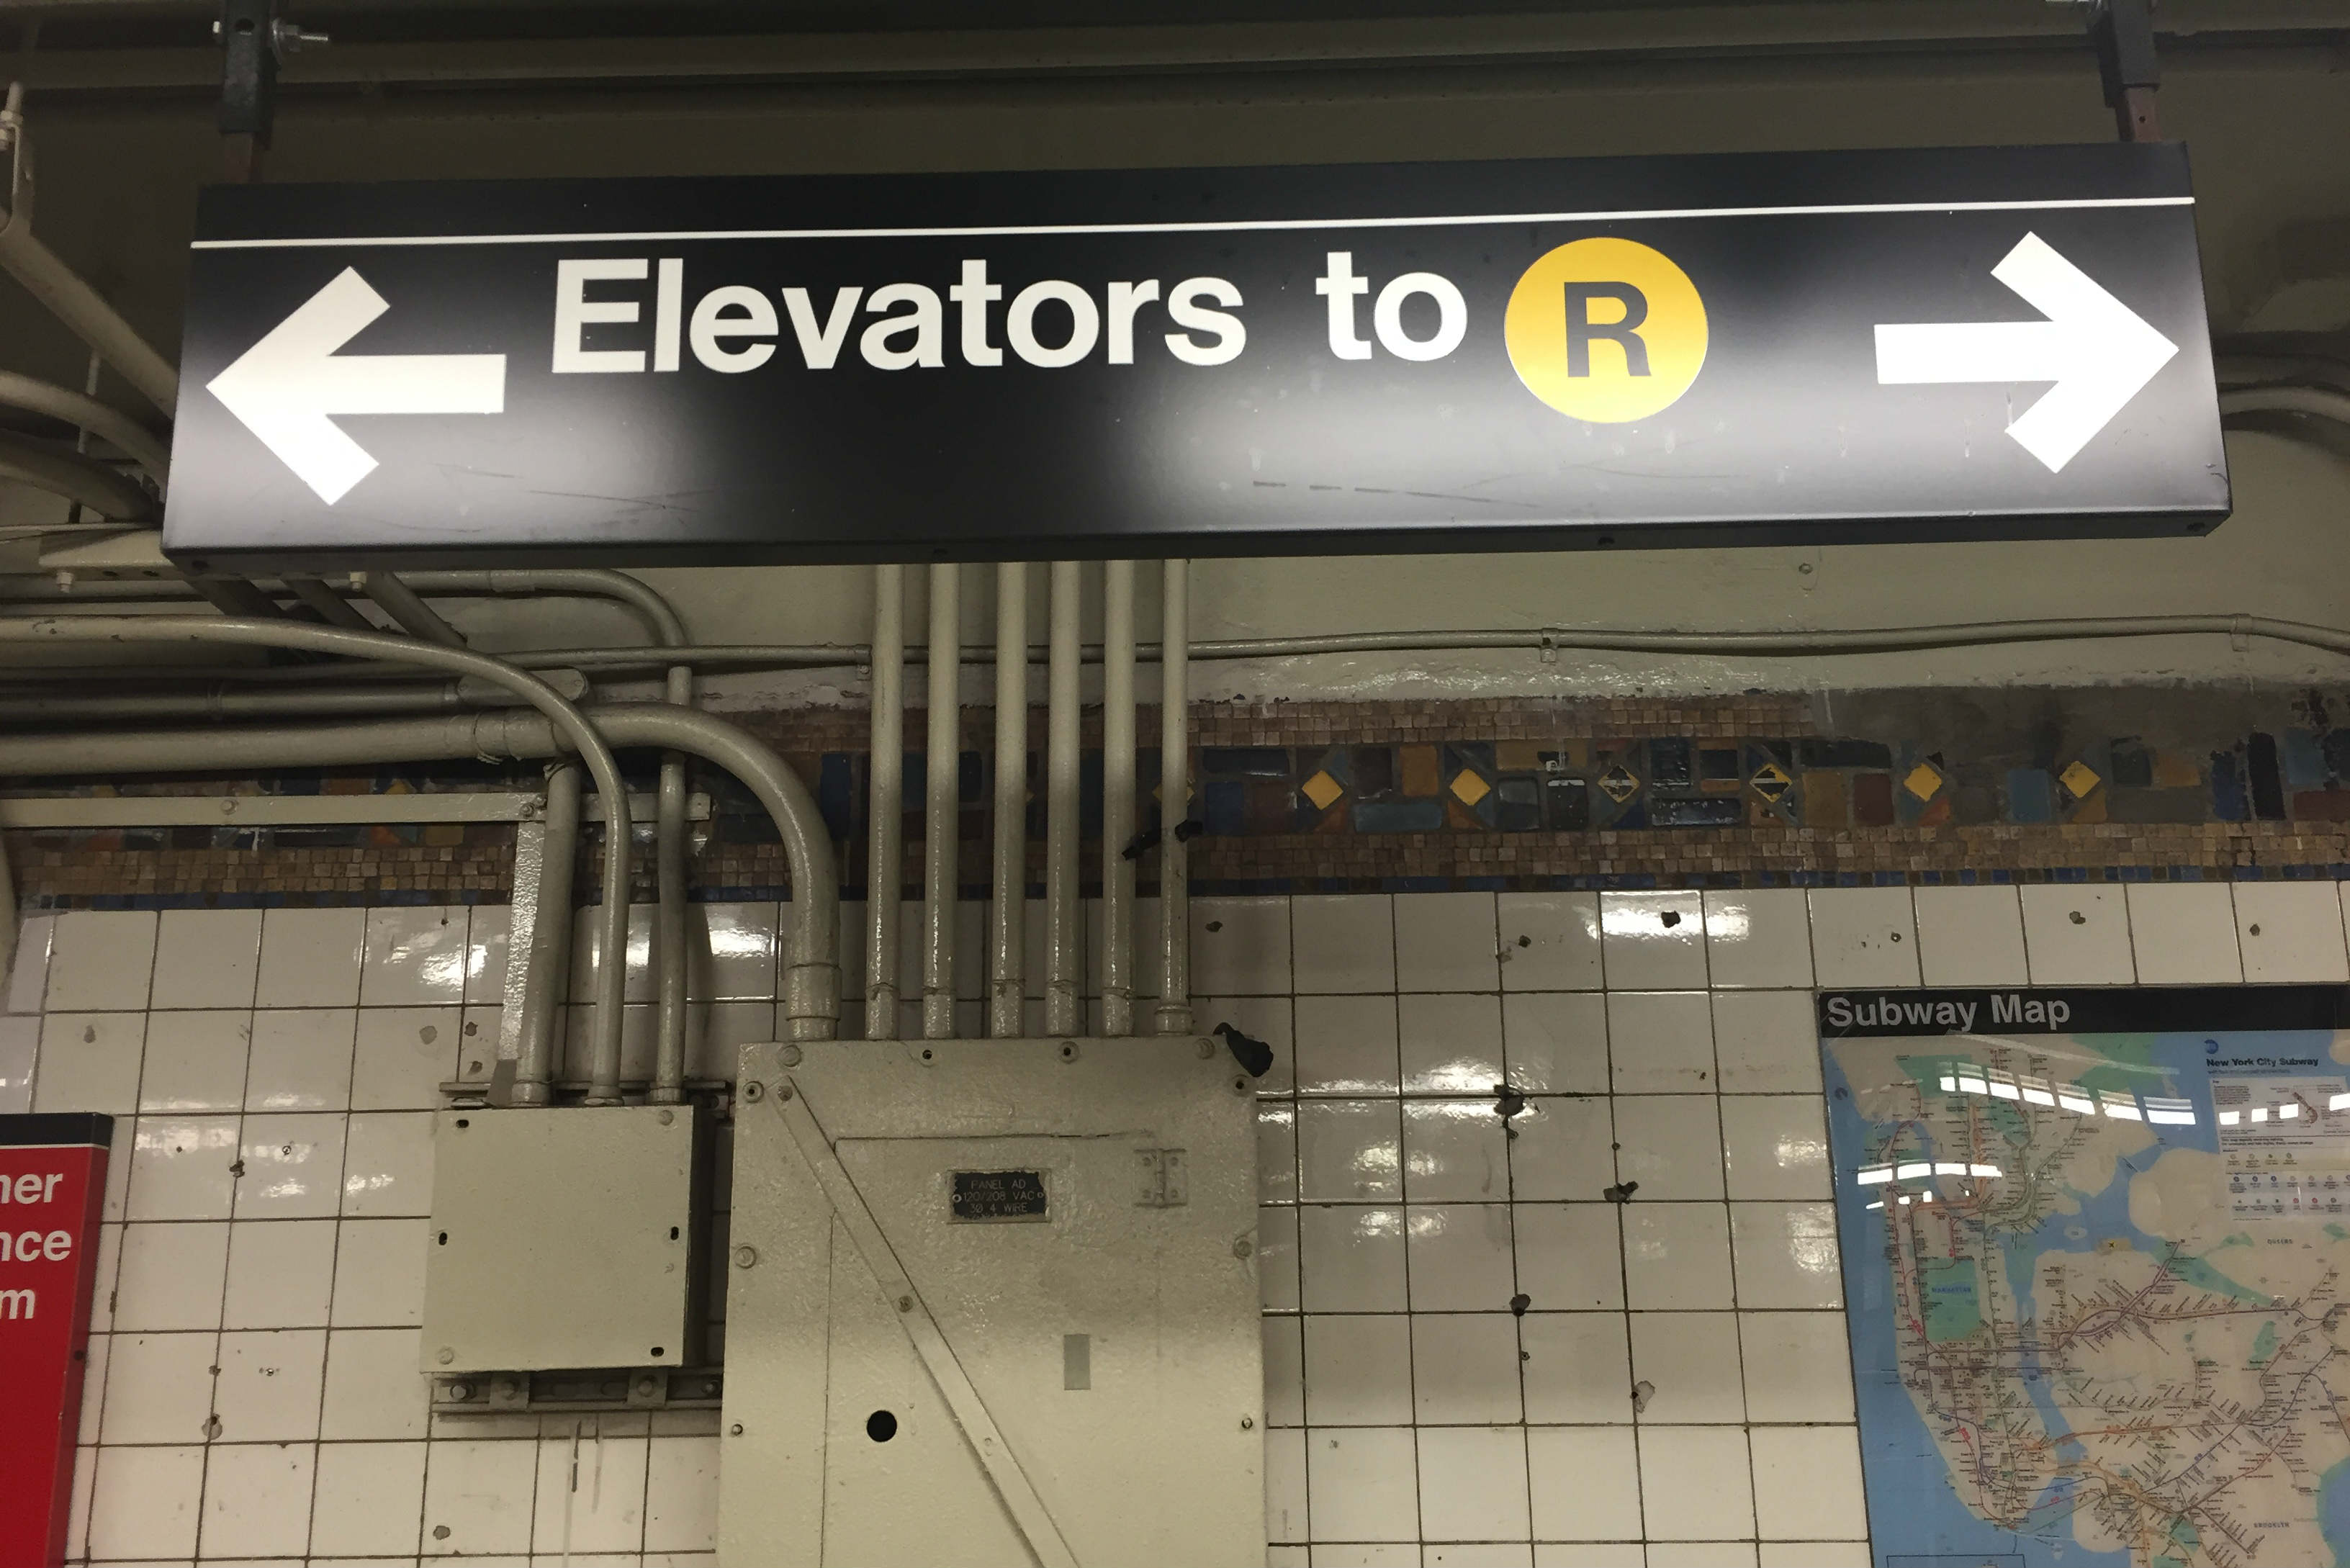 Mta Subway Map Elevators.People Trapped In R Station Elevator Rescued By Sisters Who Heard